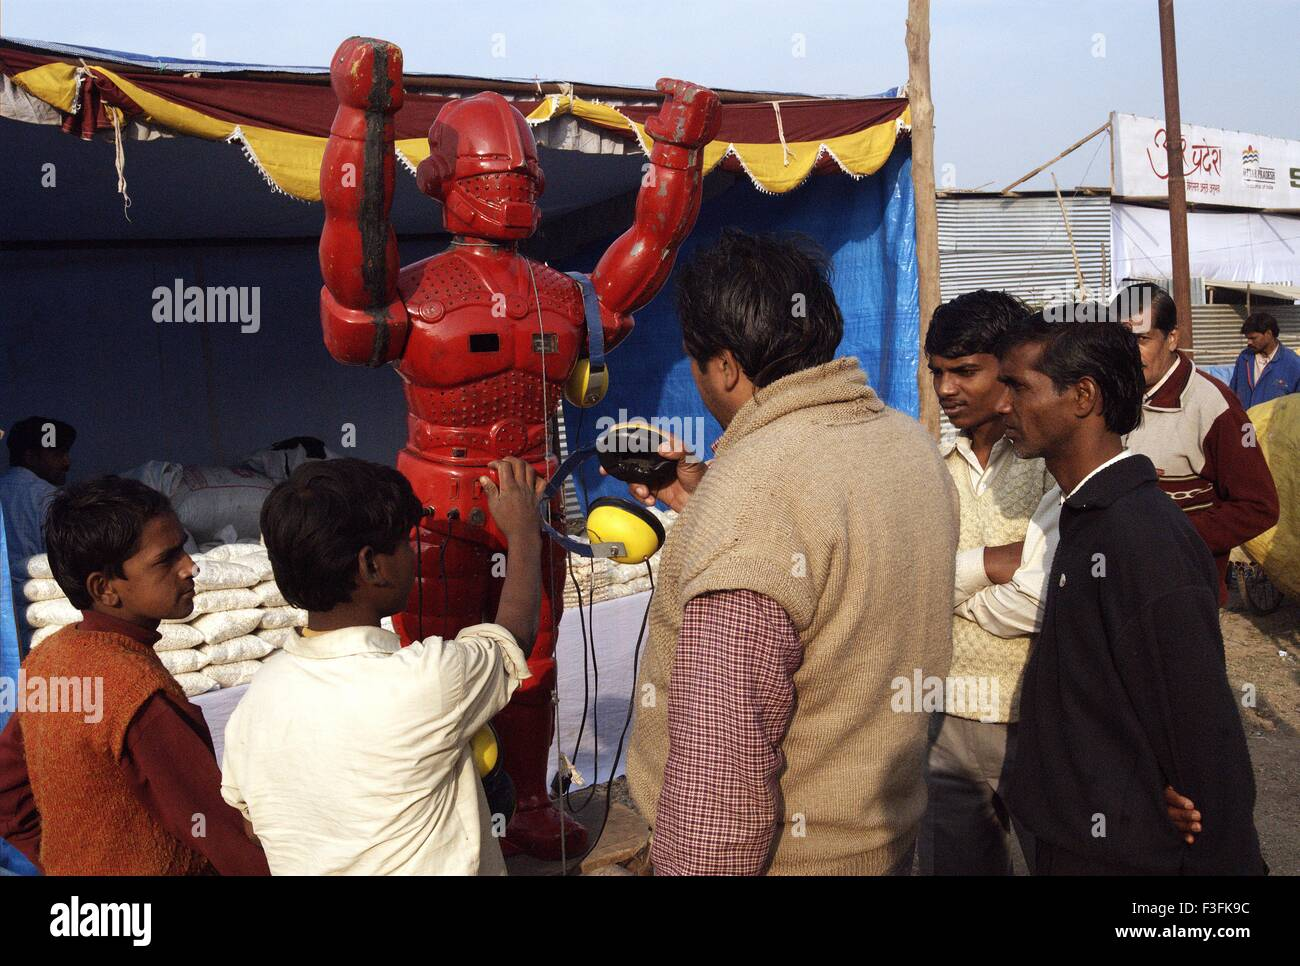 Pilgrims listen to astrology from a road side robot during the Ardh Kumbh Mela ; ; ; India - Stock Image